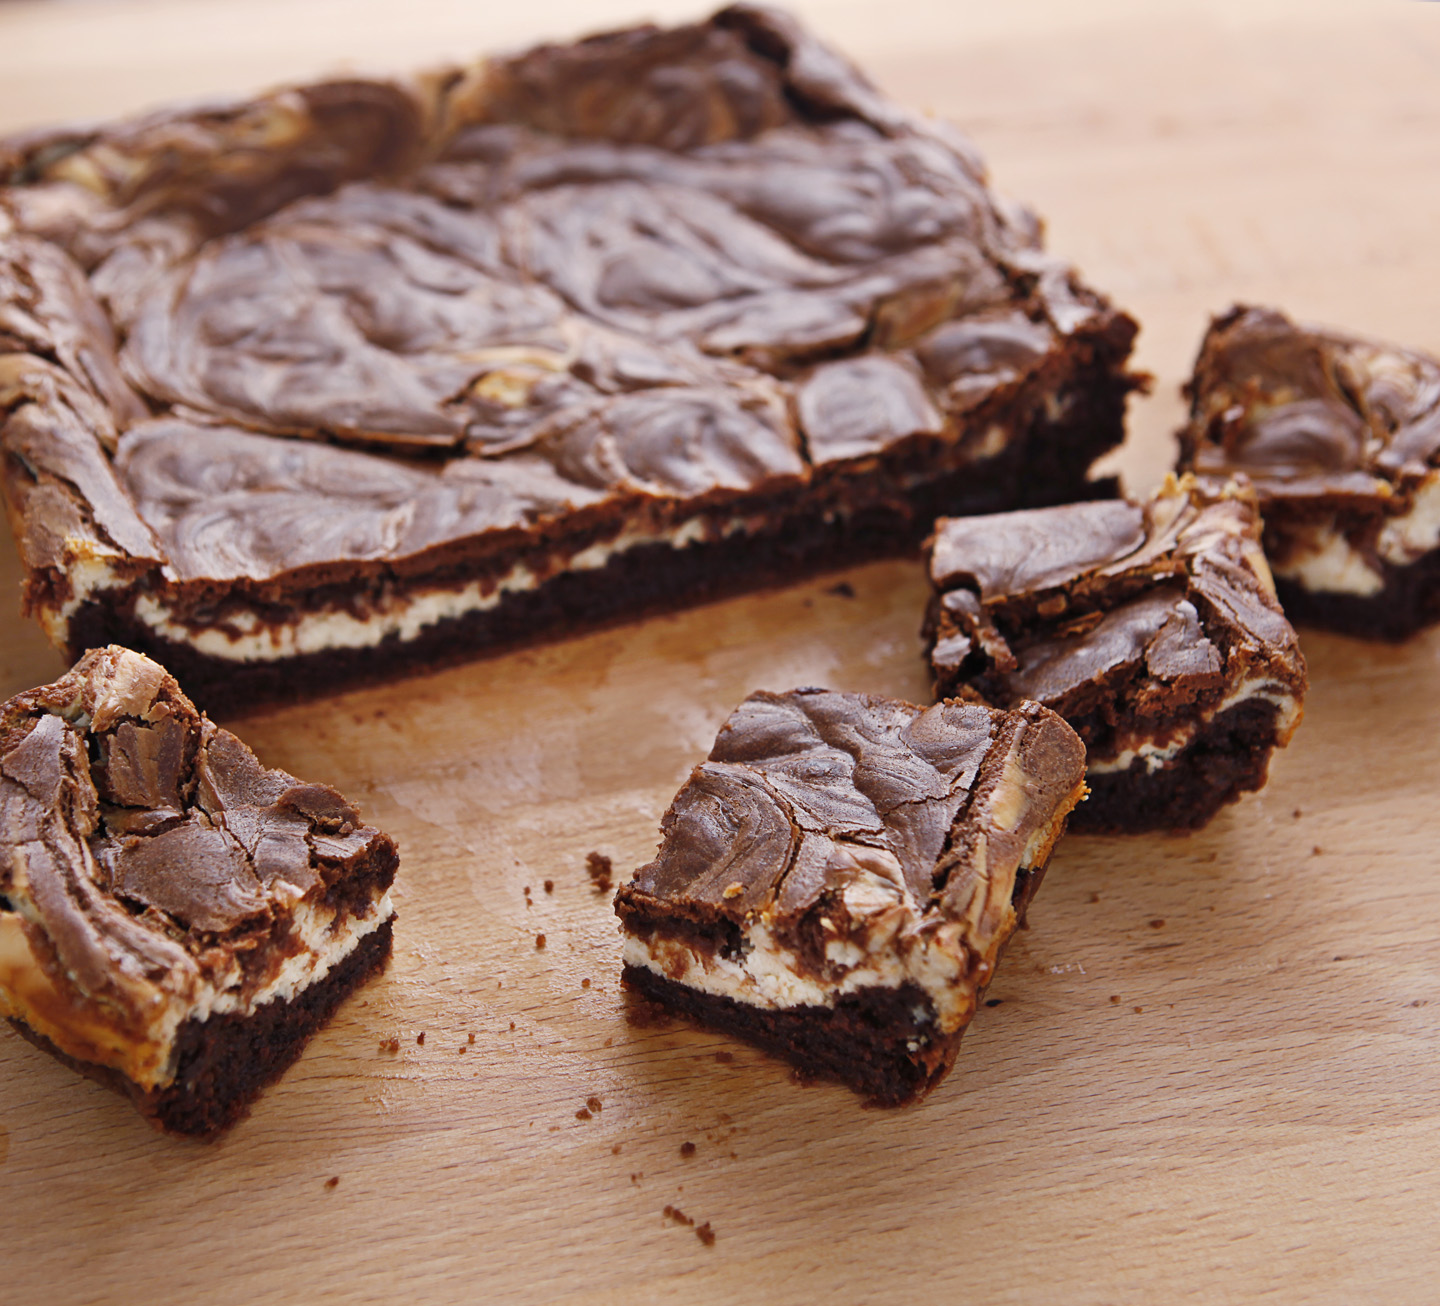 Confessions of a Bake-aholic: Cream Cheese Brownies (and a winner!)